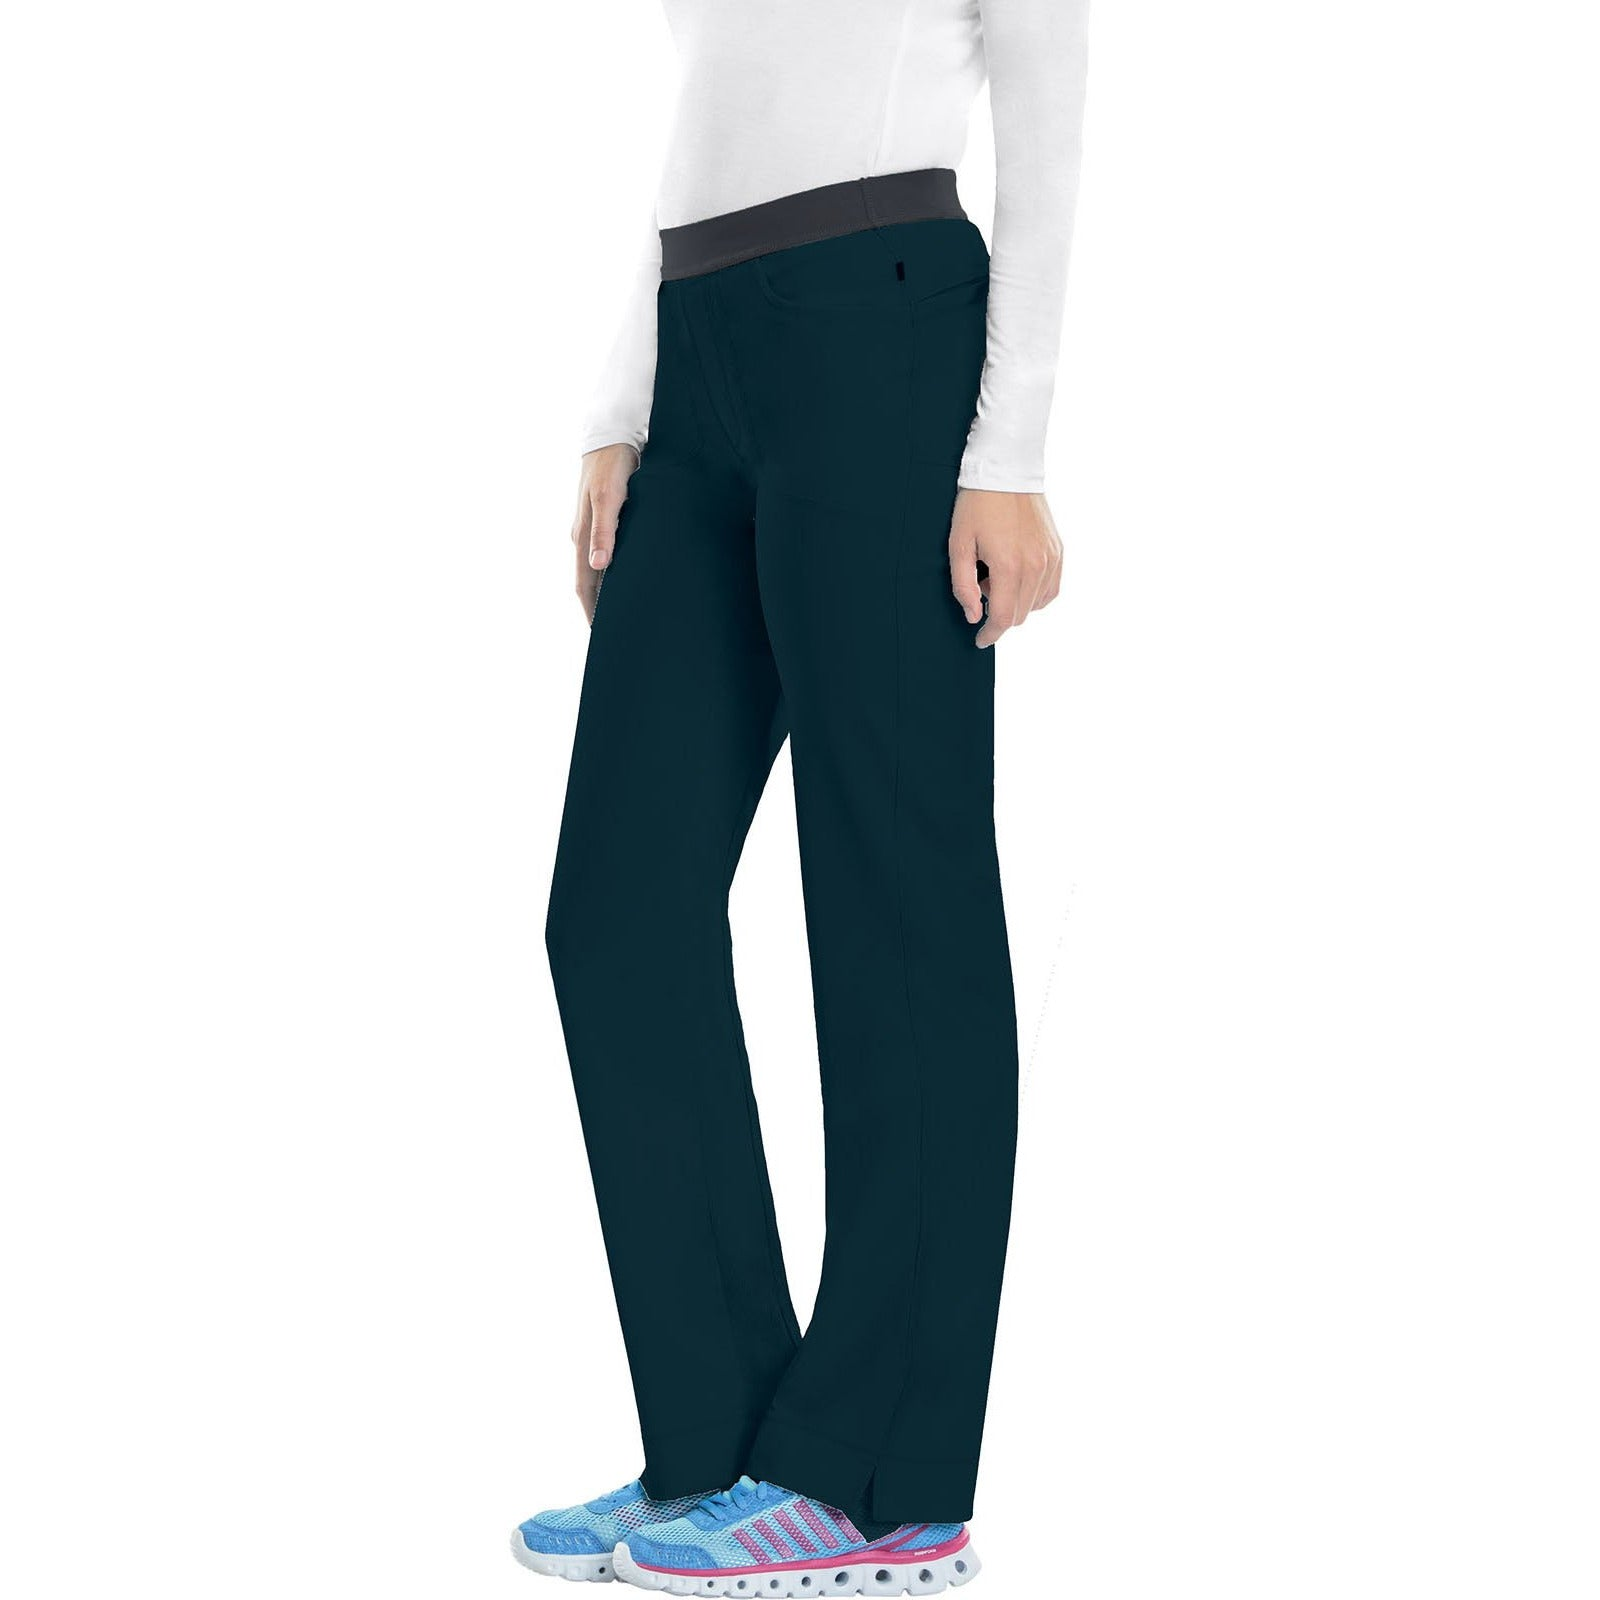 Low Rise Slim Pull-On Pant 1124A (XL-5XL) INSEAM 30.5''